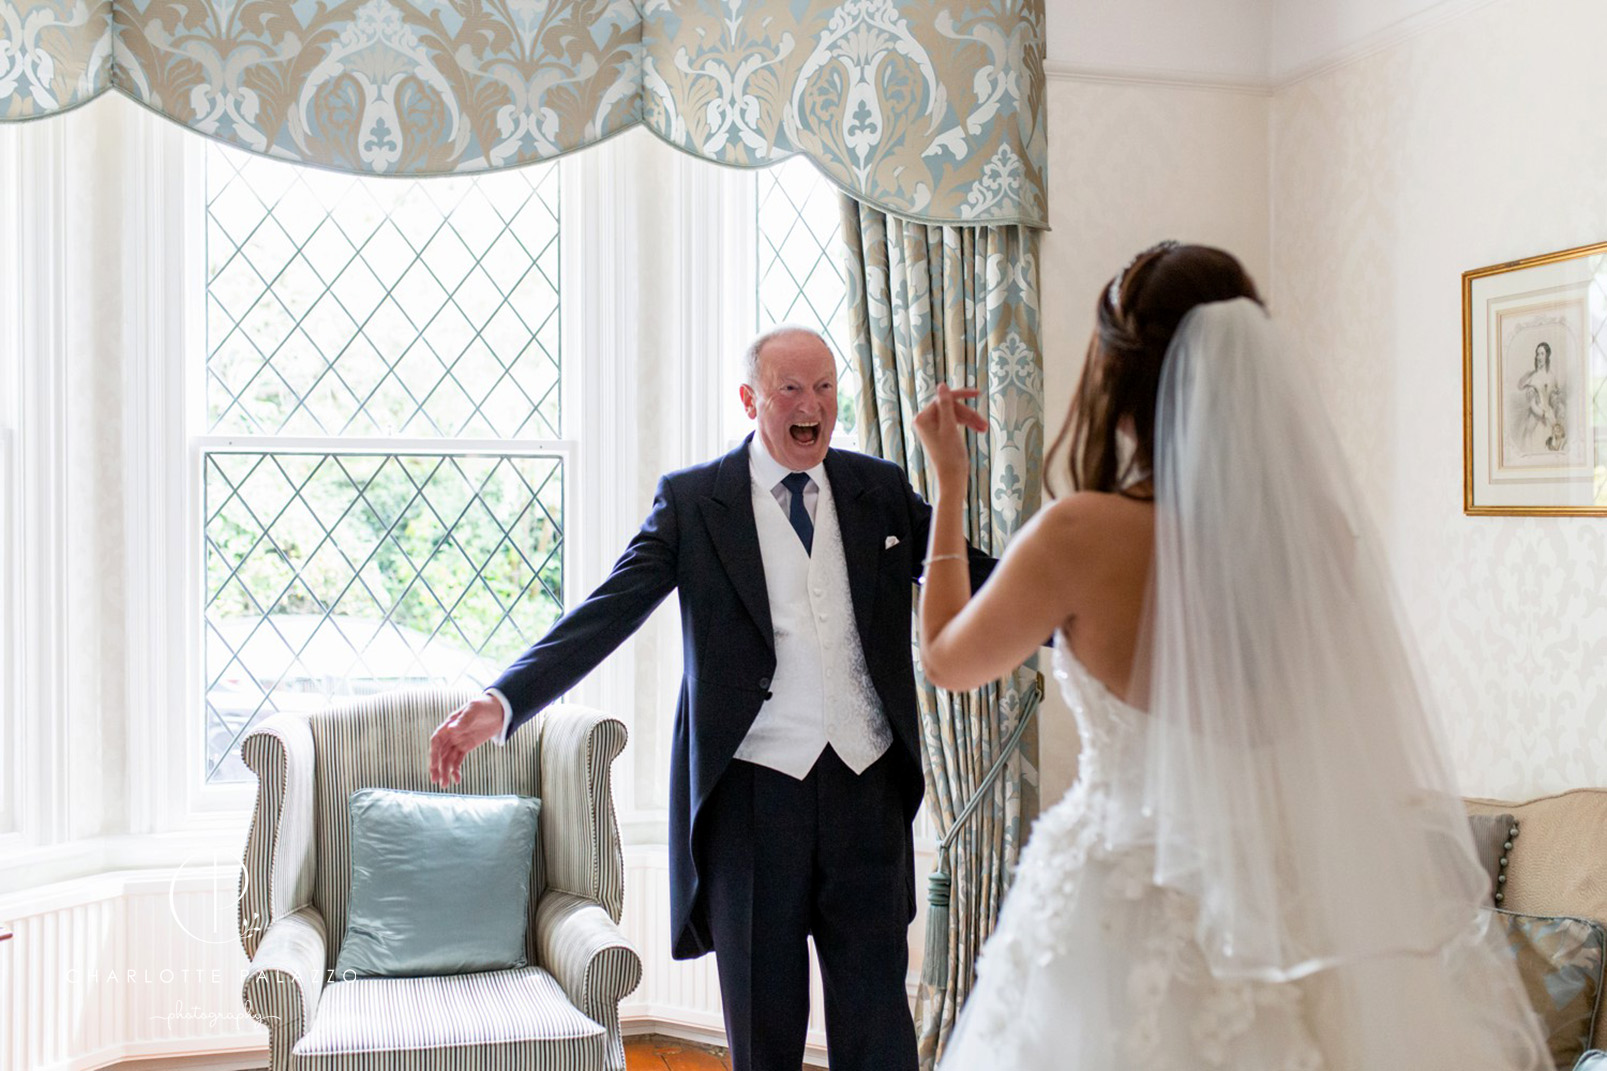 Fine_art_wedding_Photography_Cheshire_Wedding_Venues_The_Mere_Resort_0006.jpg